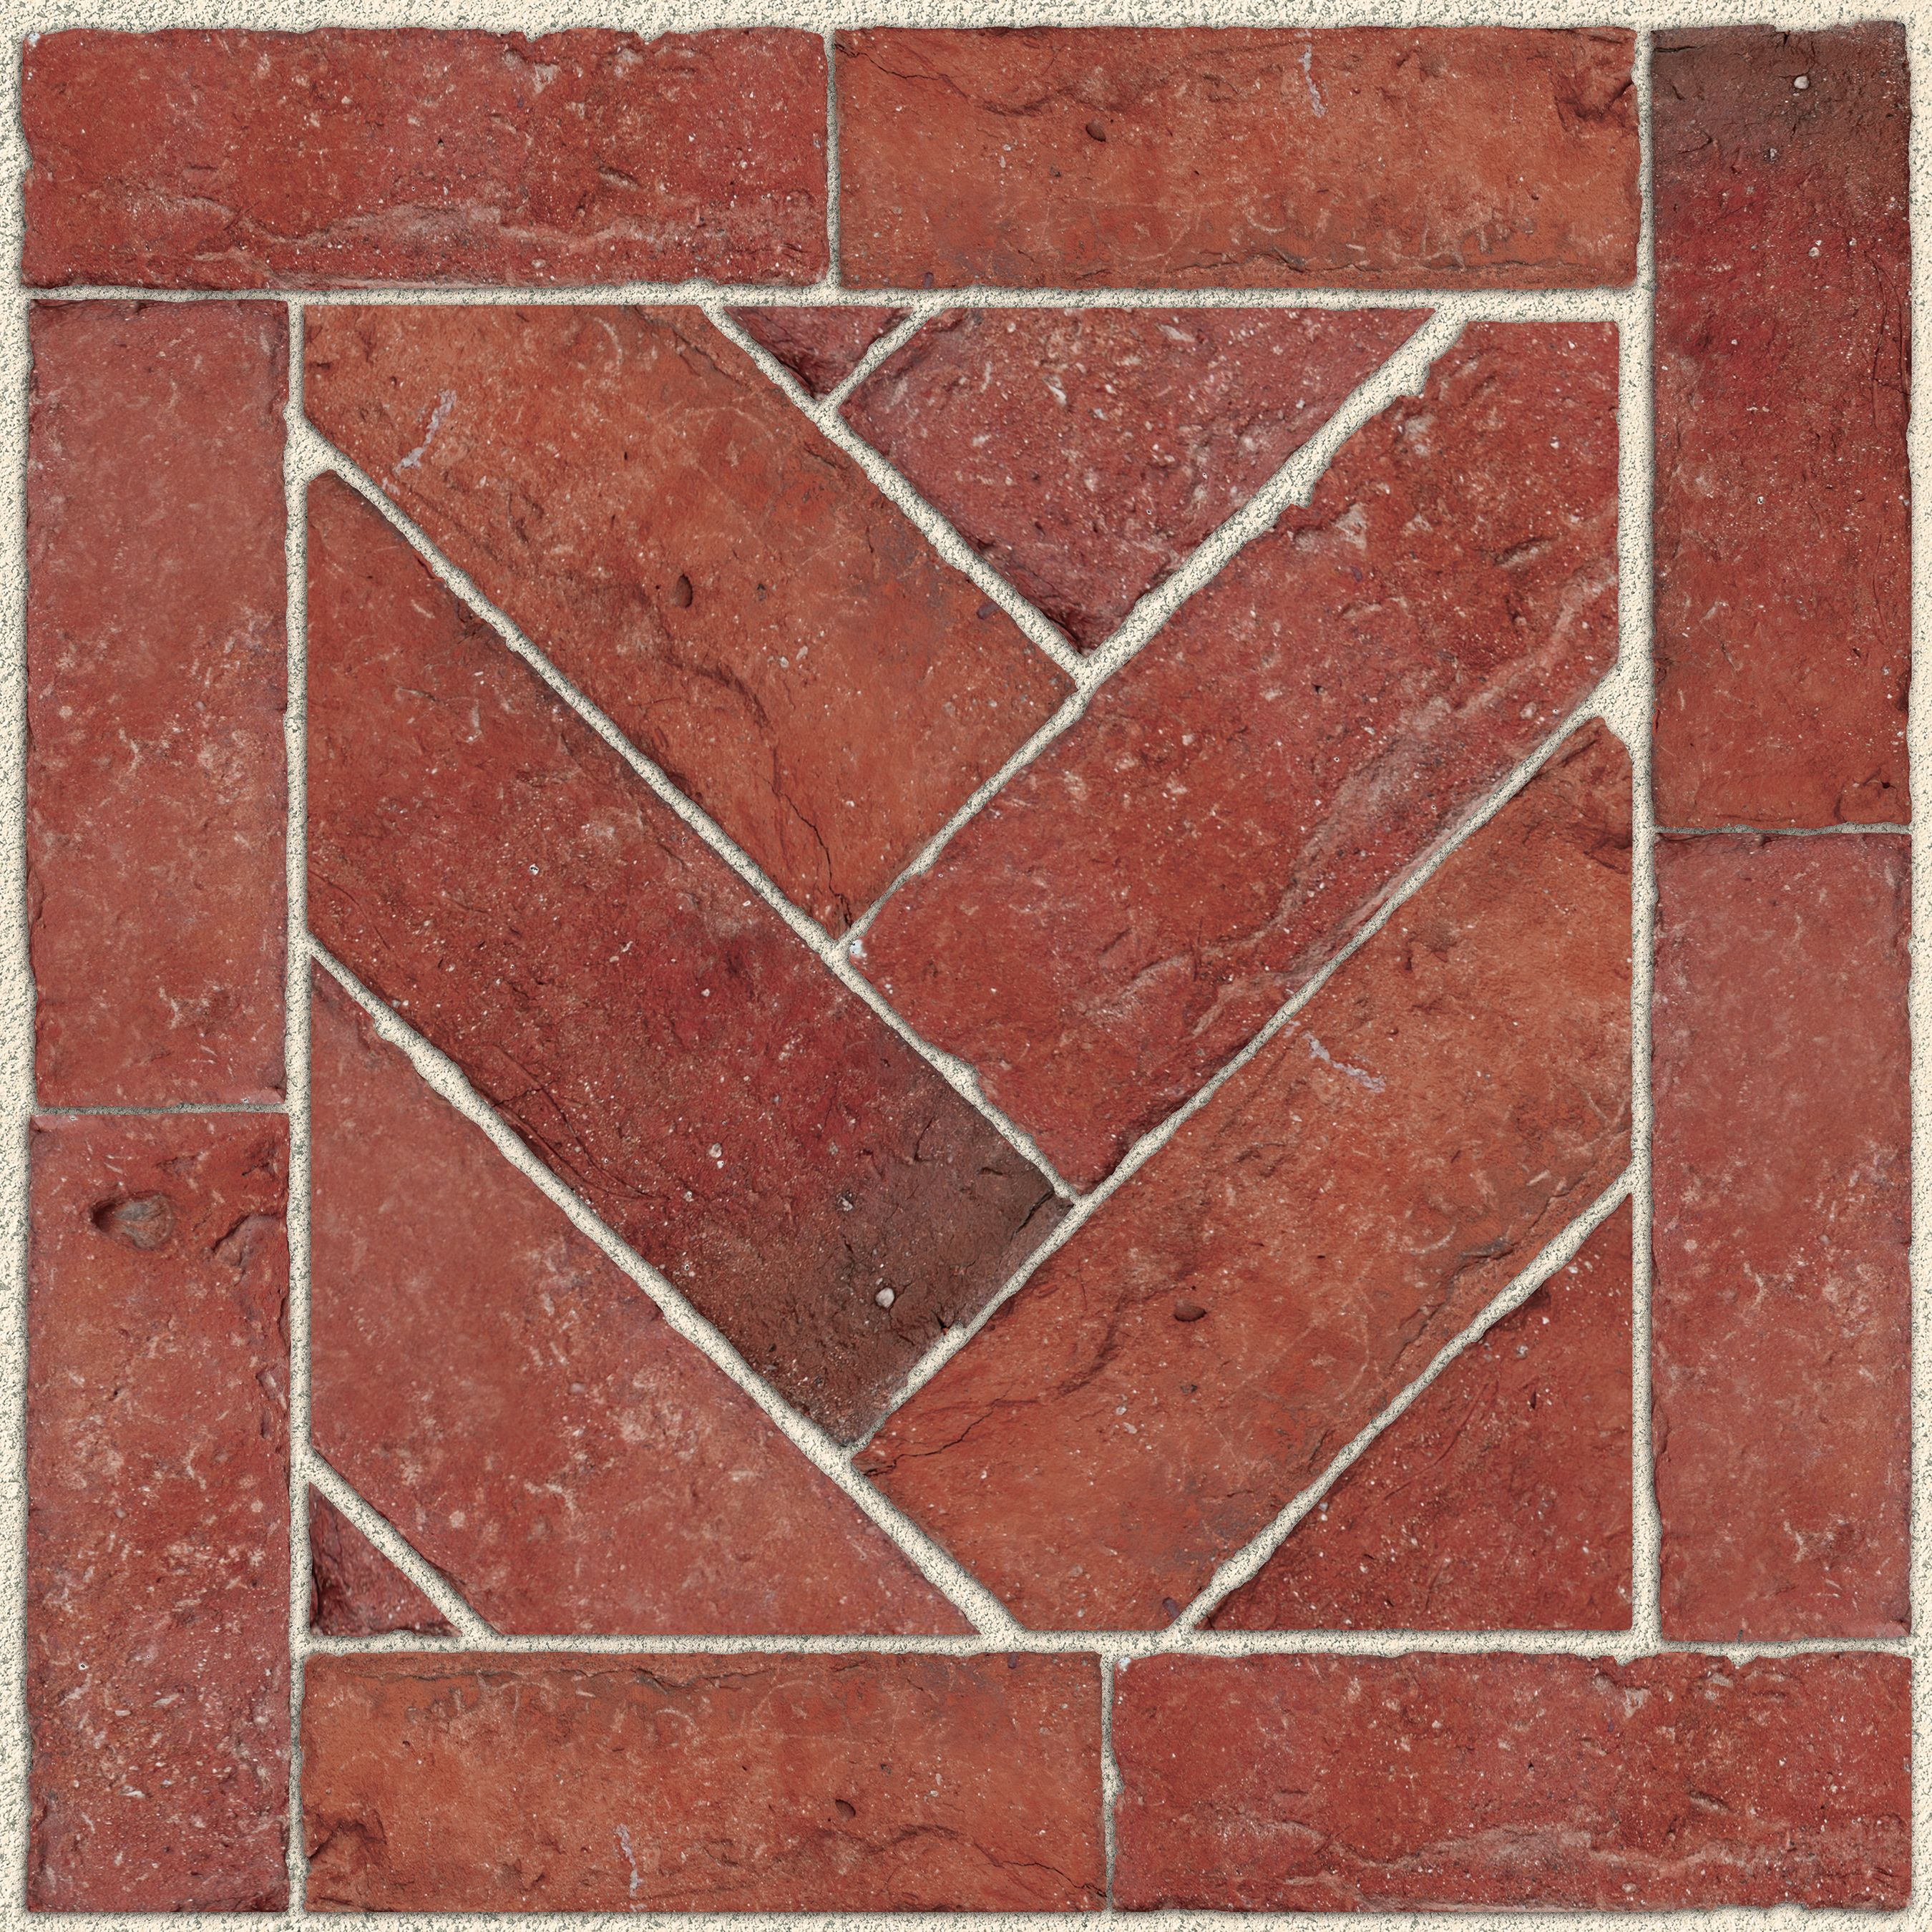 Our Brick Pattern Is A Great Way To Add Texture And Dimension To A Space Use This Applique With Rustic Decor Like Gre Vinyl Flooring Flooring Graphic Wall Art